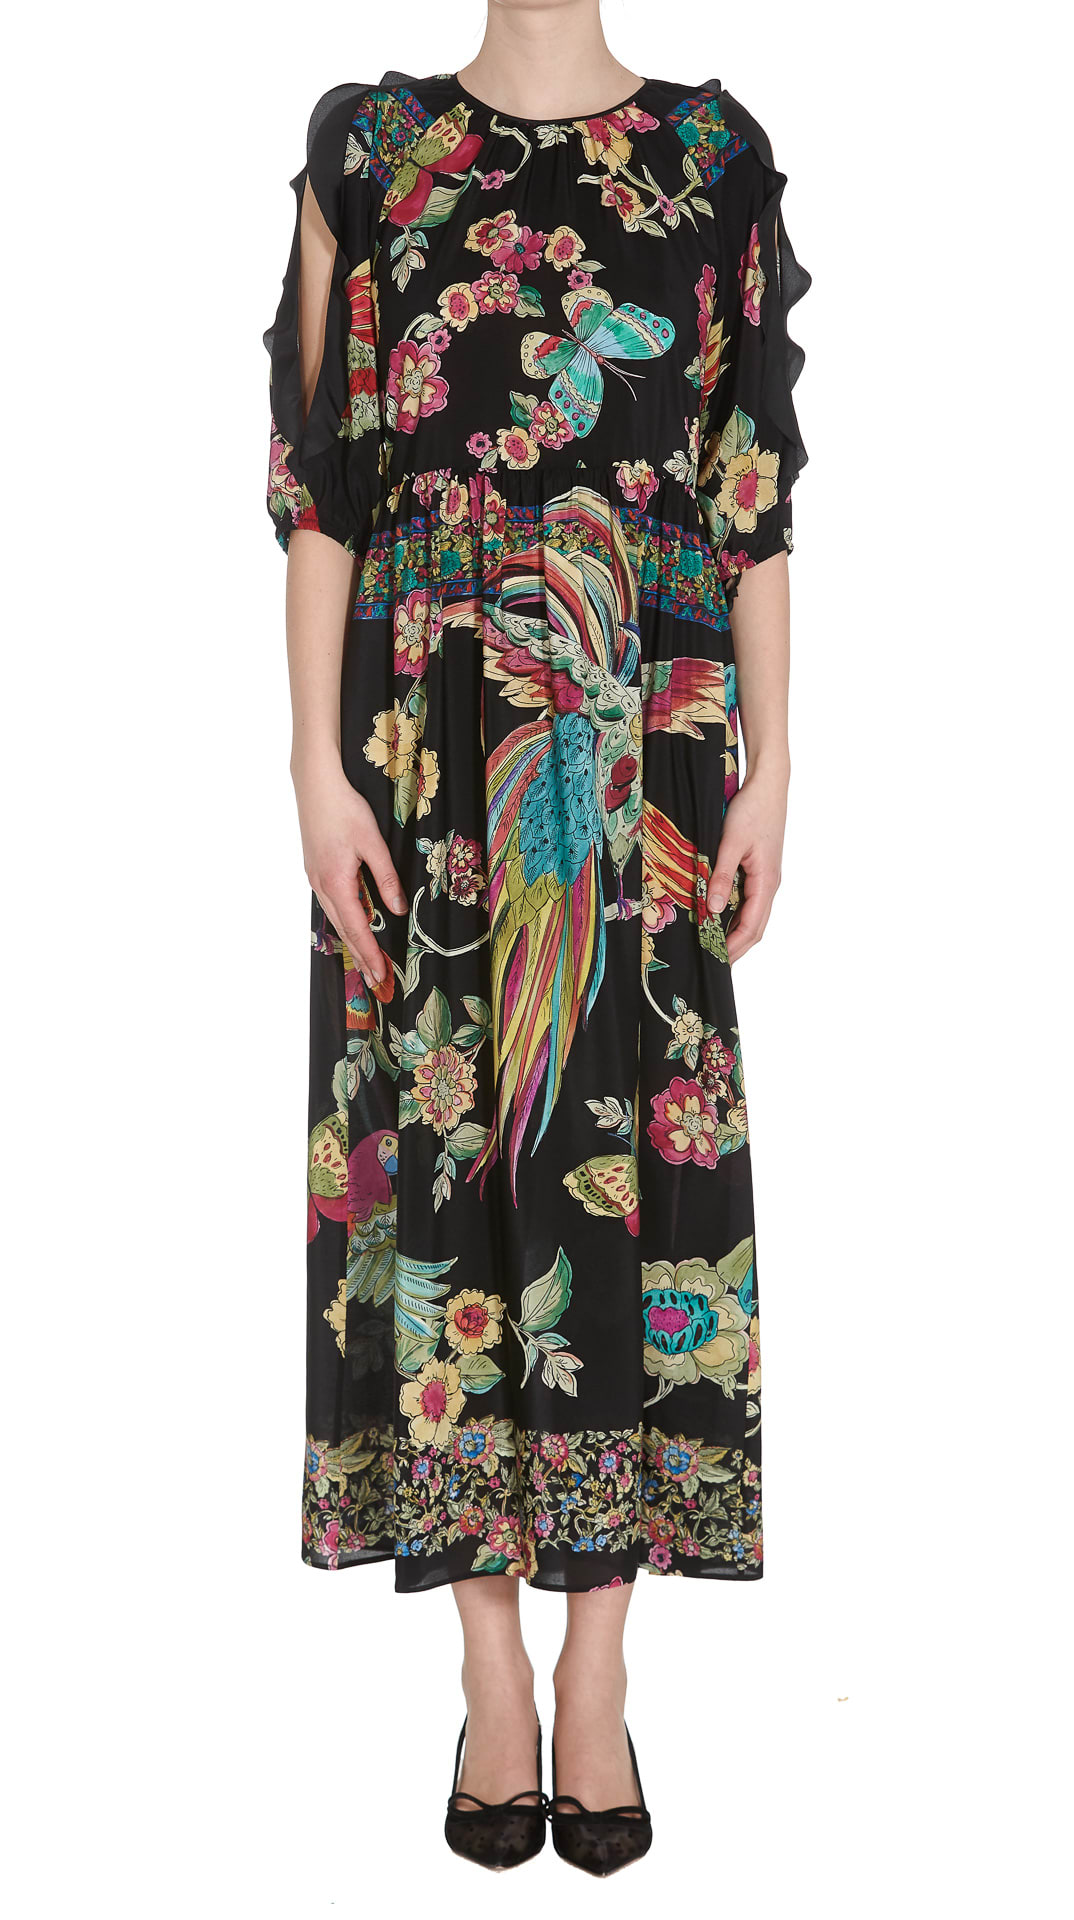 Buy Red Valentino Dress Flowers And Butterflies Print online, shop RED Valentino with free shipping